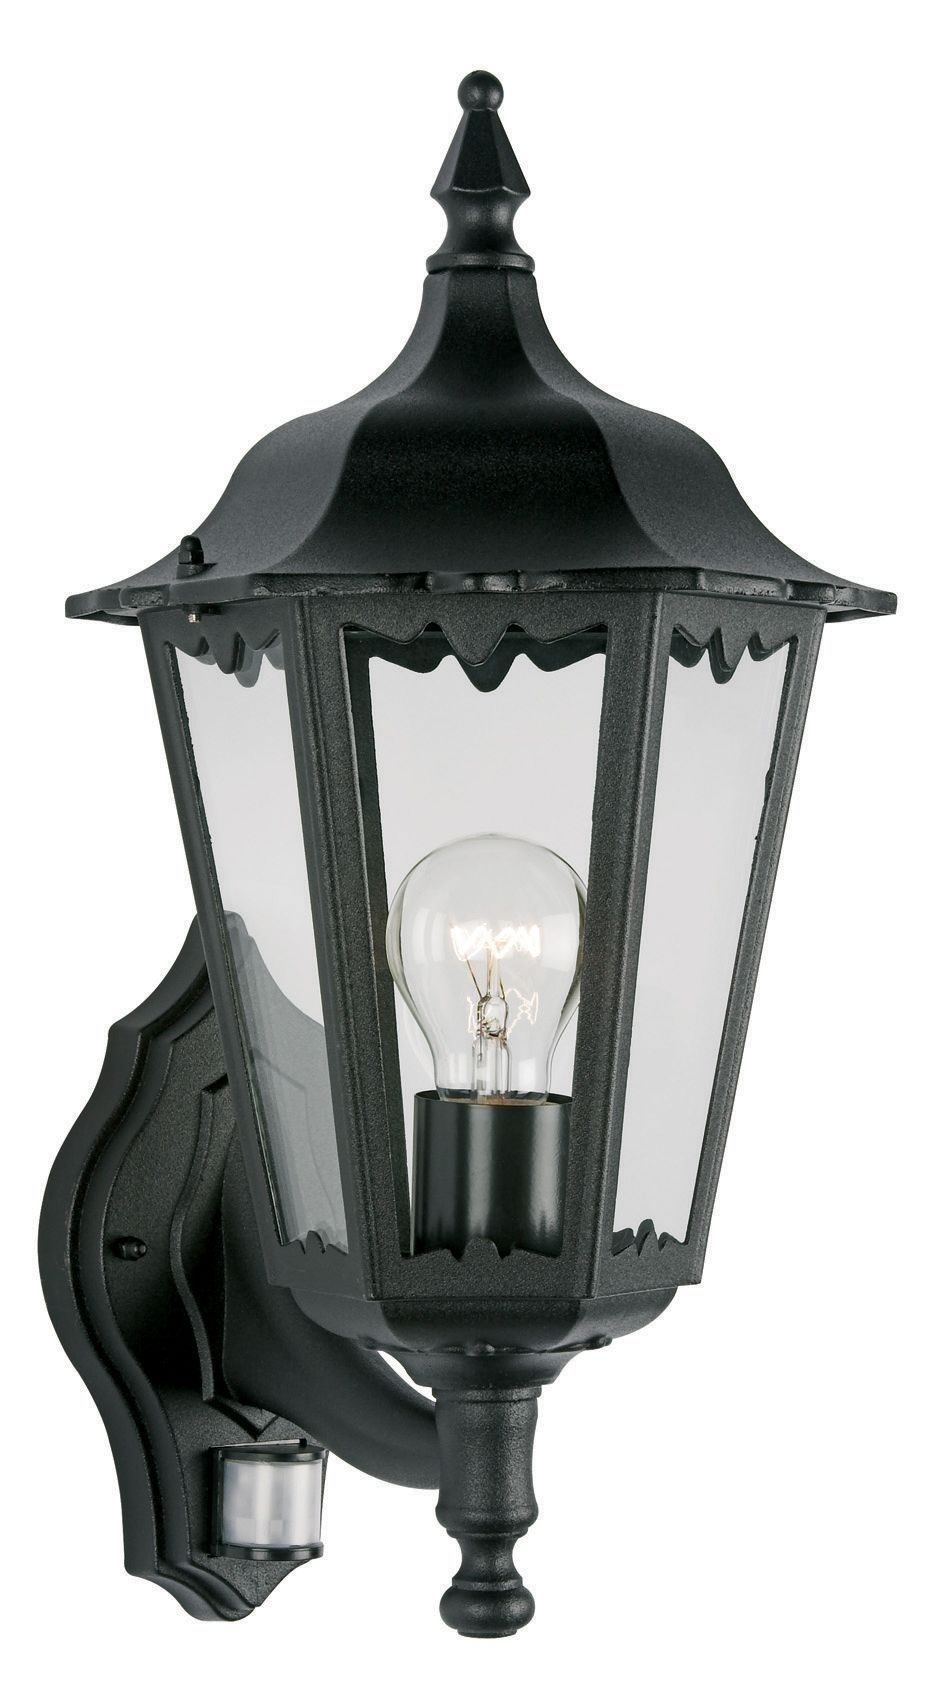 Waterville Black 60W Mains Powered External Pir Lantern | House pertaining to Outdoor Mains Lanterns (Image 20 of 20)